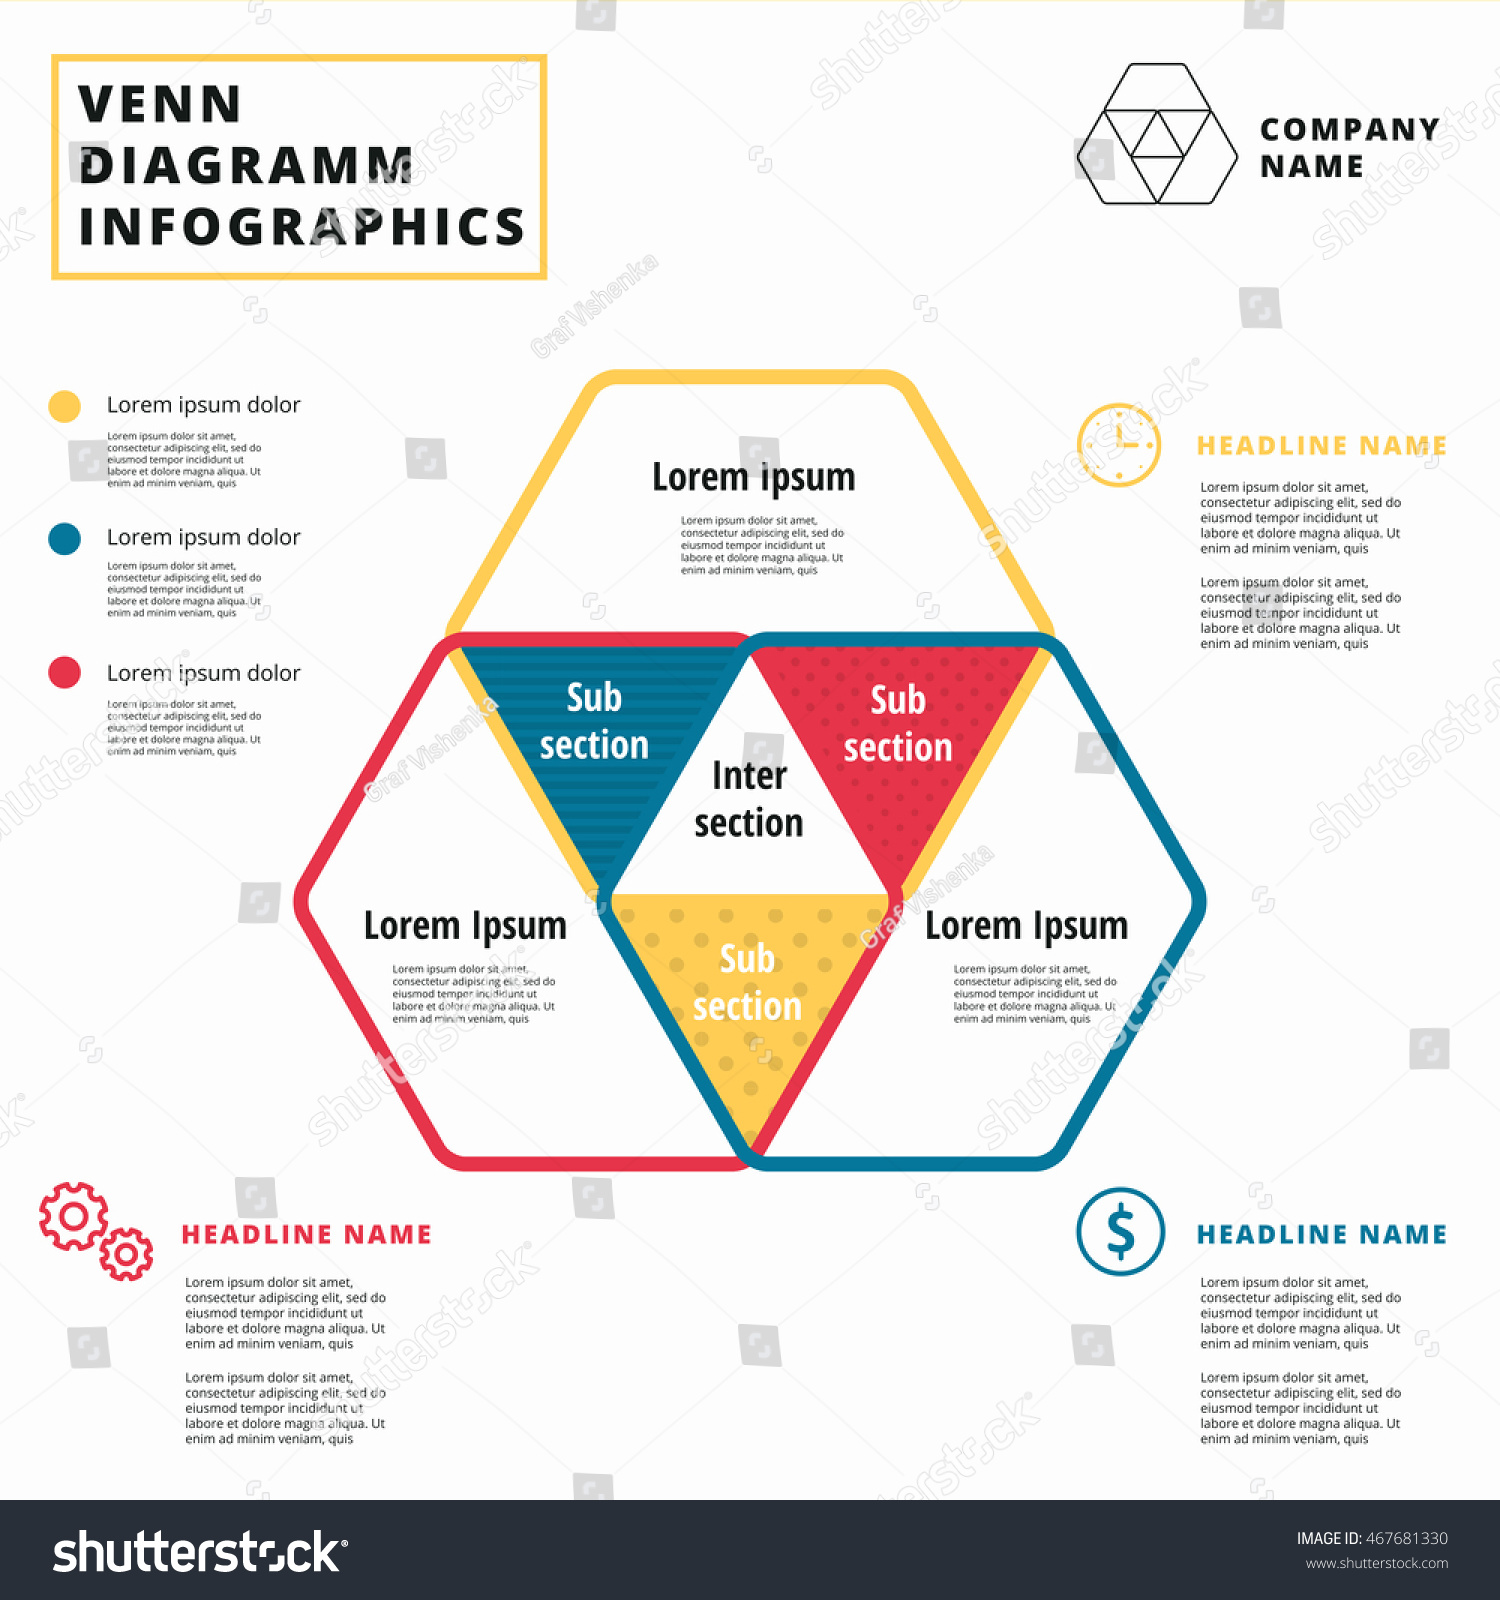 Venn diagram vector circles. Infographics template design. Overlapping  shapes for set or logic graphic